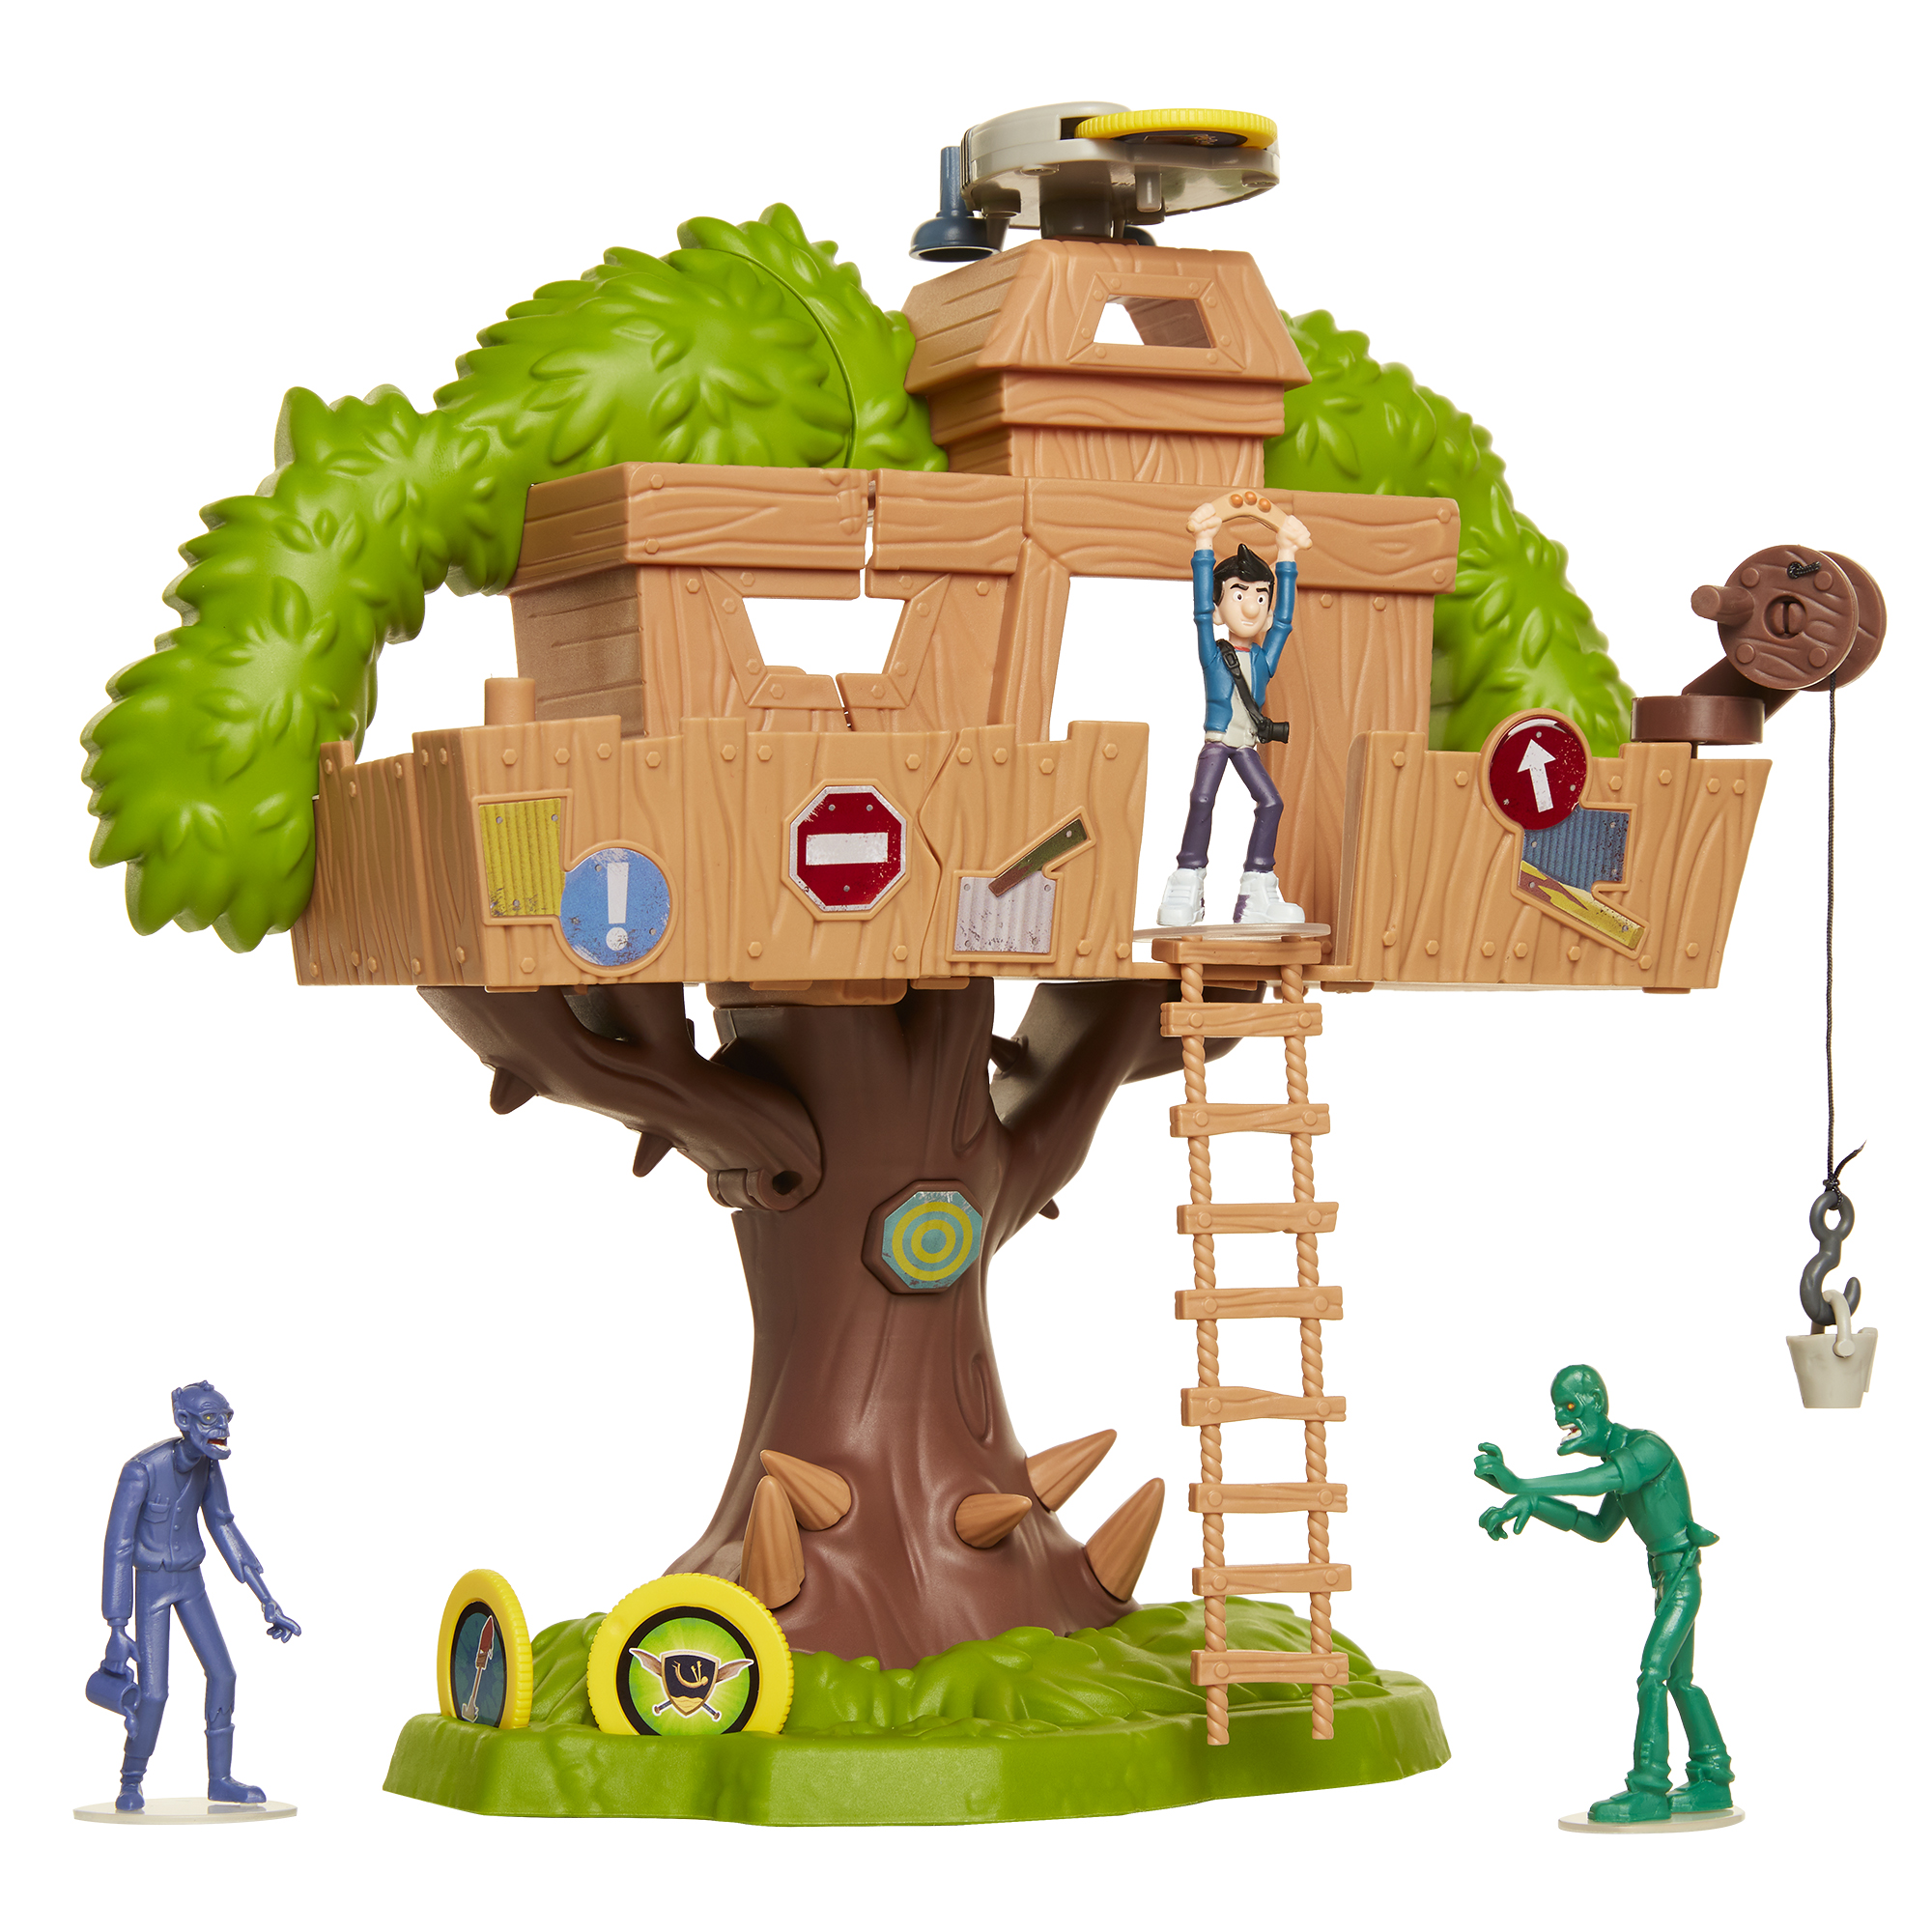 Tree House of Awesomeness